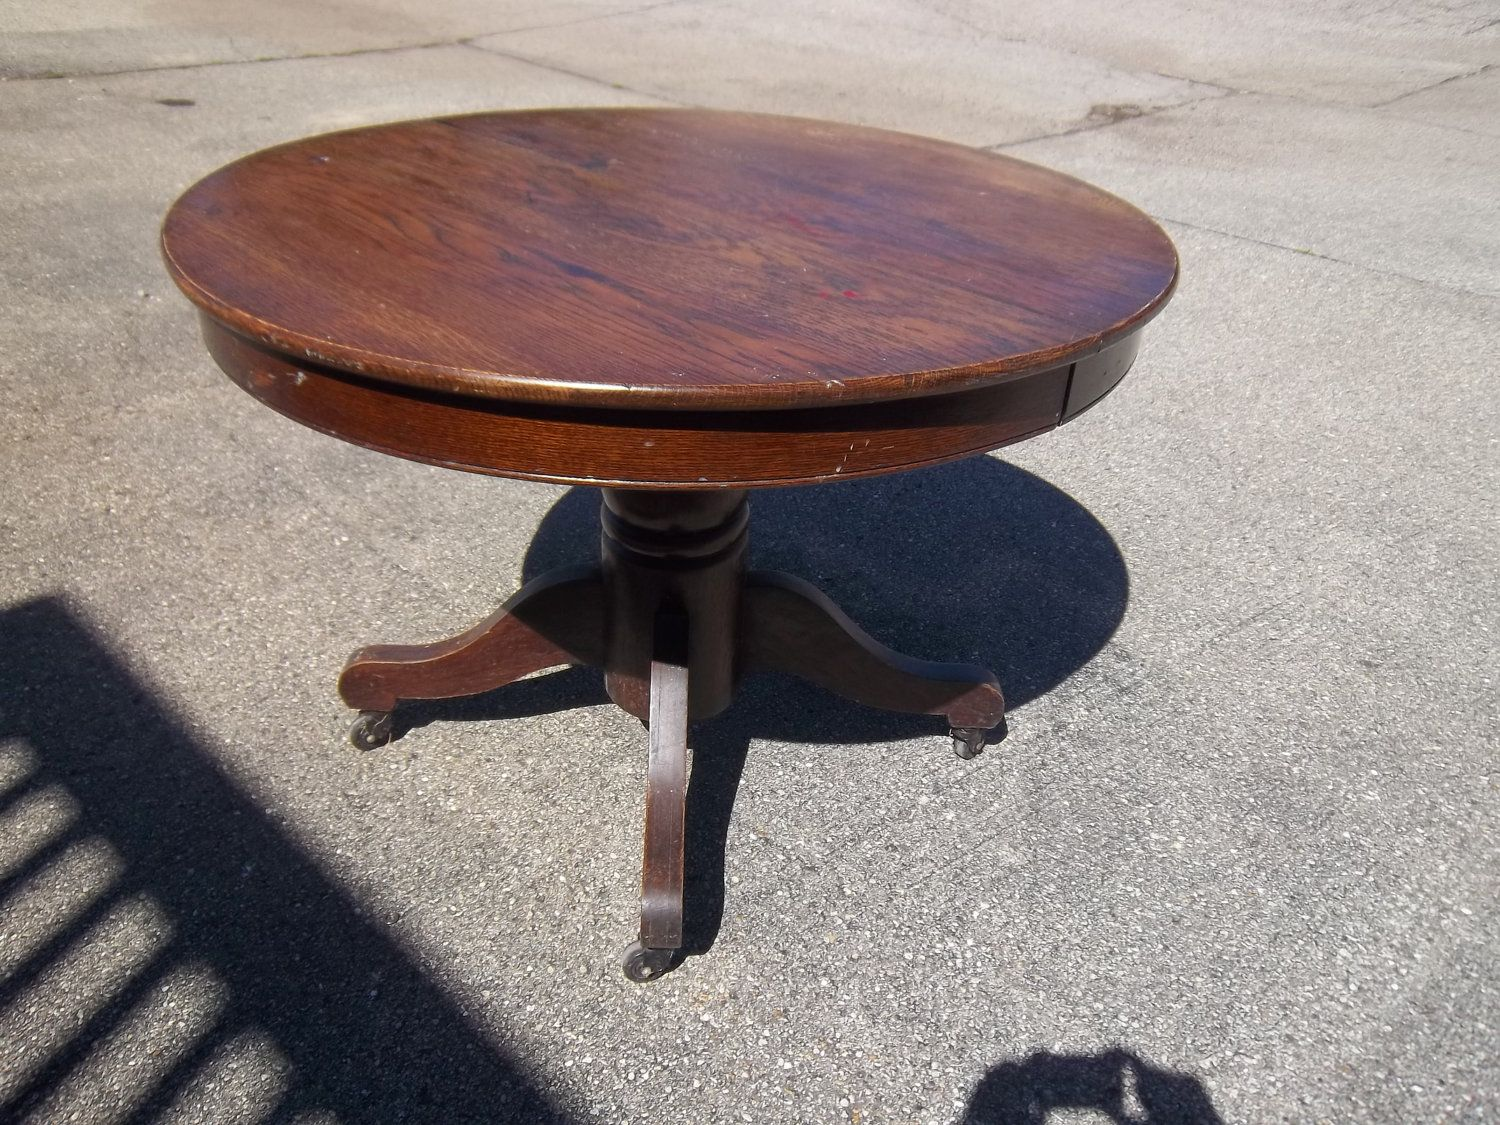 Antique Round Dark Wood Dining Table From H. Early 1900 U0027 S Photos And  Information In AncientPoint